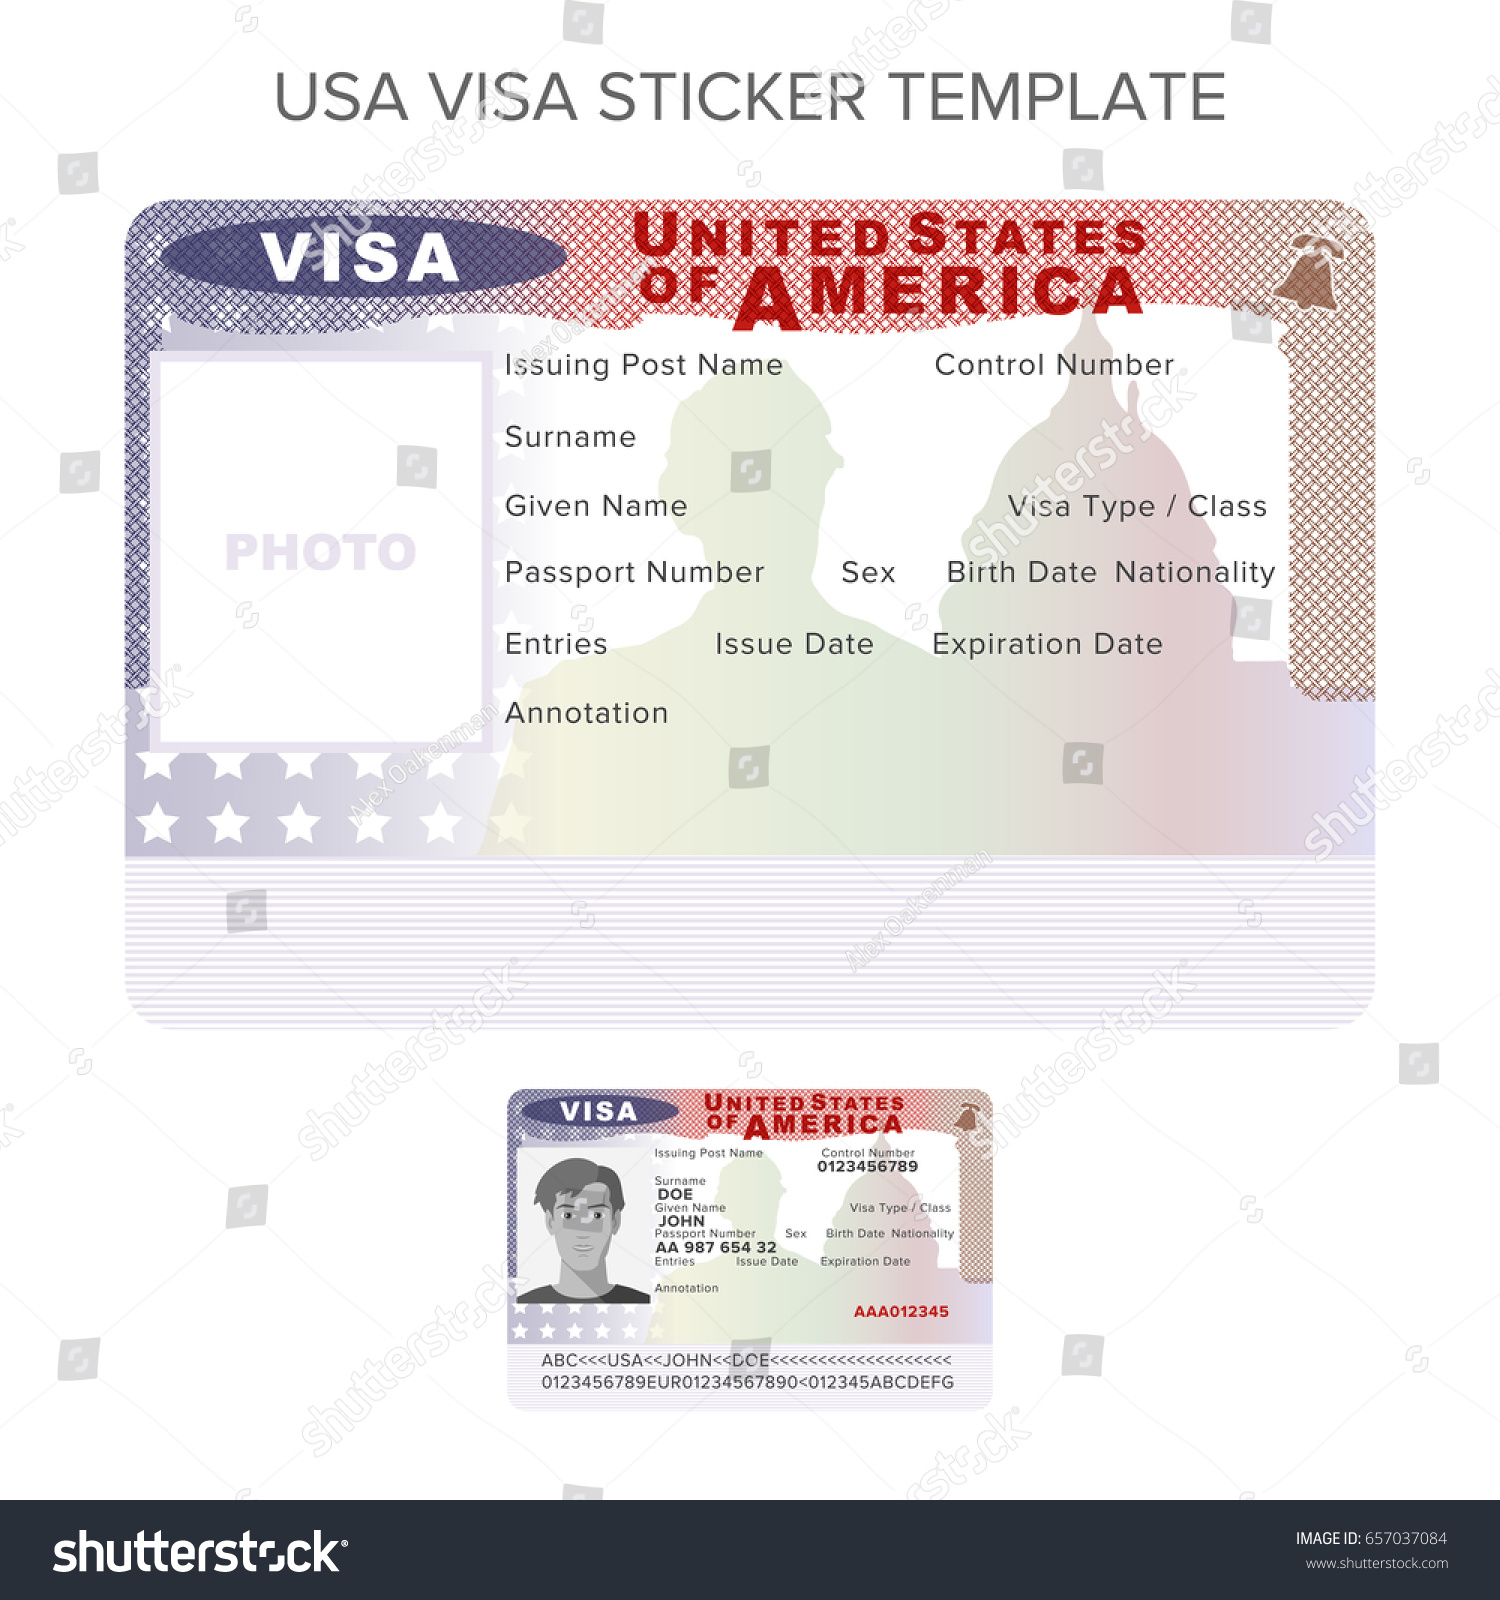 Visa invitation letter template usa business examples | letter.